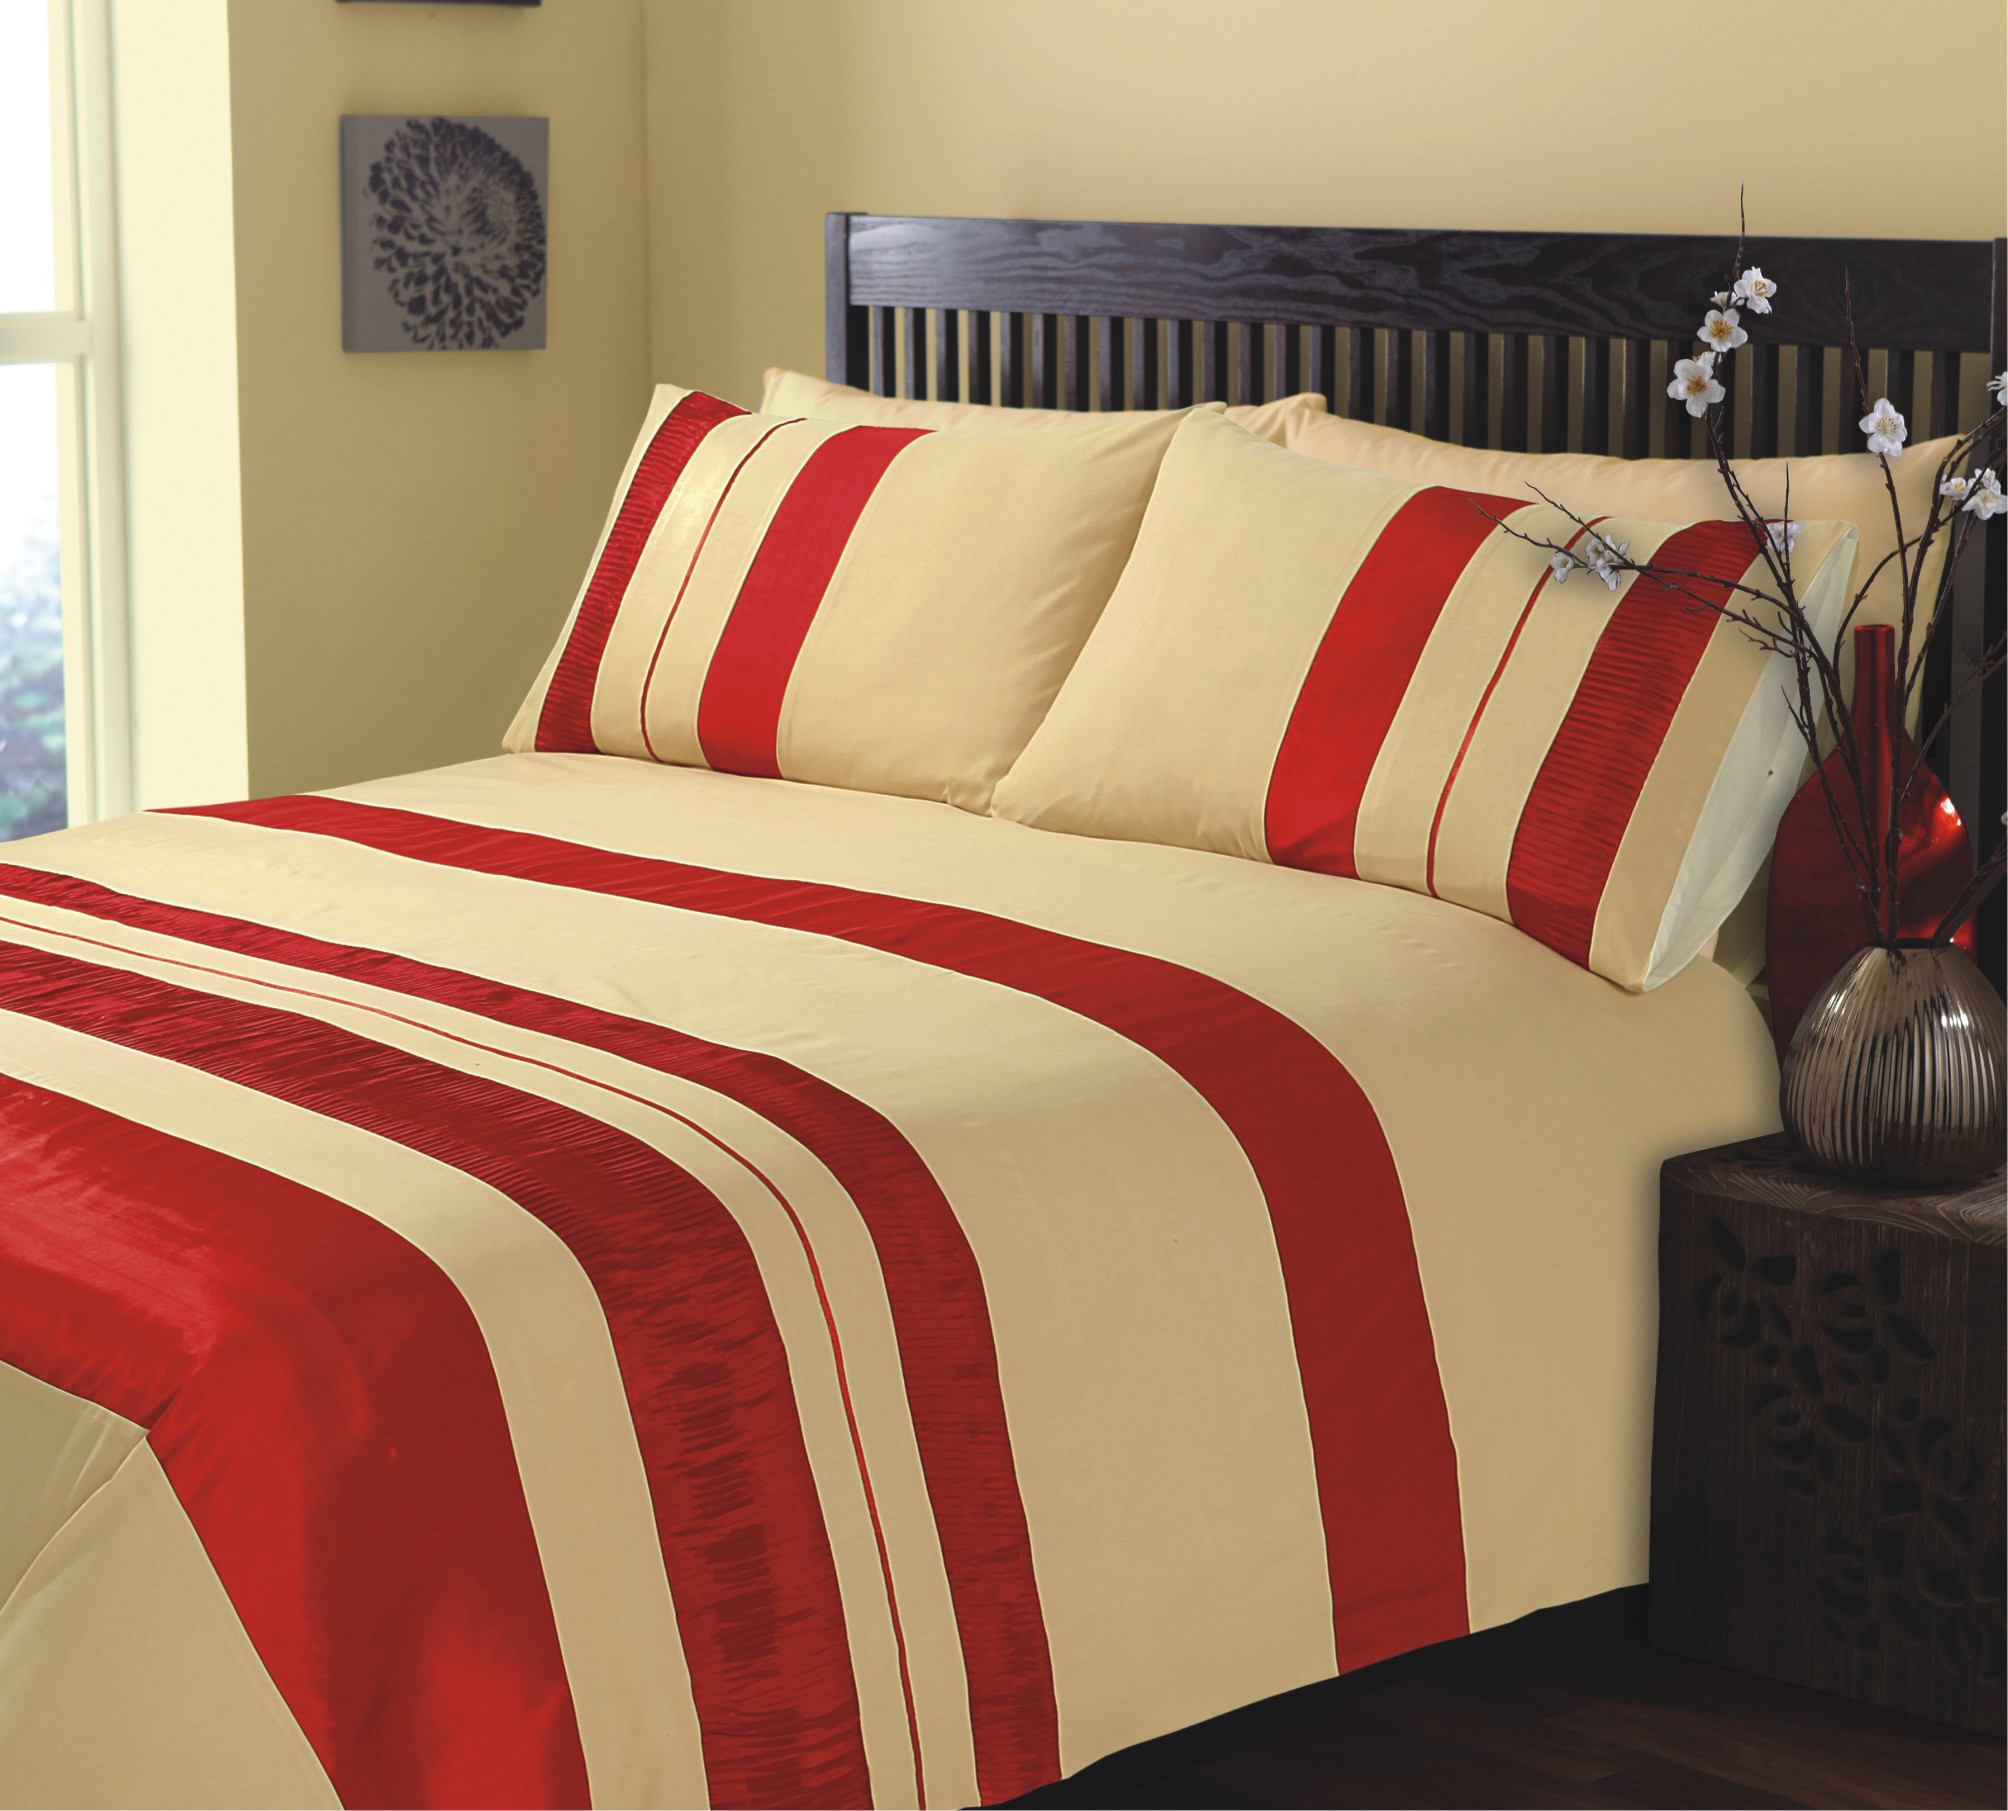 King Size Ripple And Plain Stripe Red And Gold Duvet Cover Bedding